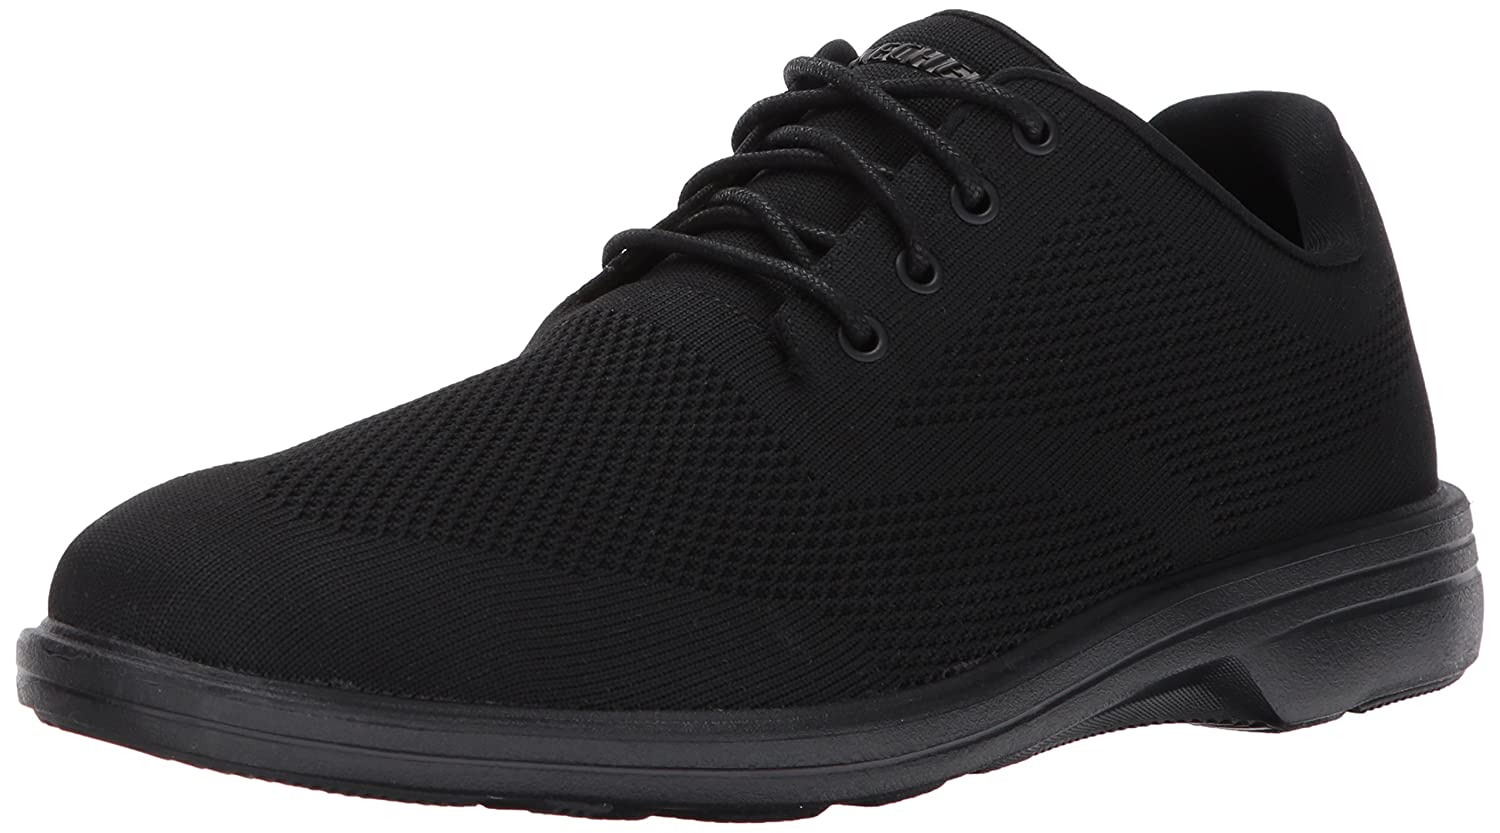 Details about Men's Skechers 65293BBK Walson Dolen Dress Shoes Black